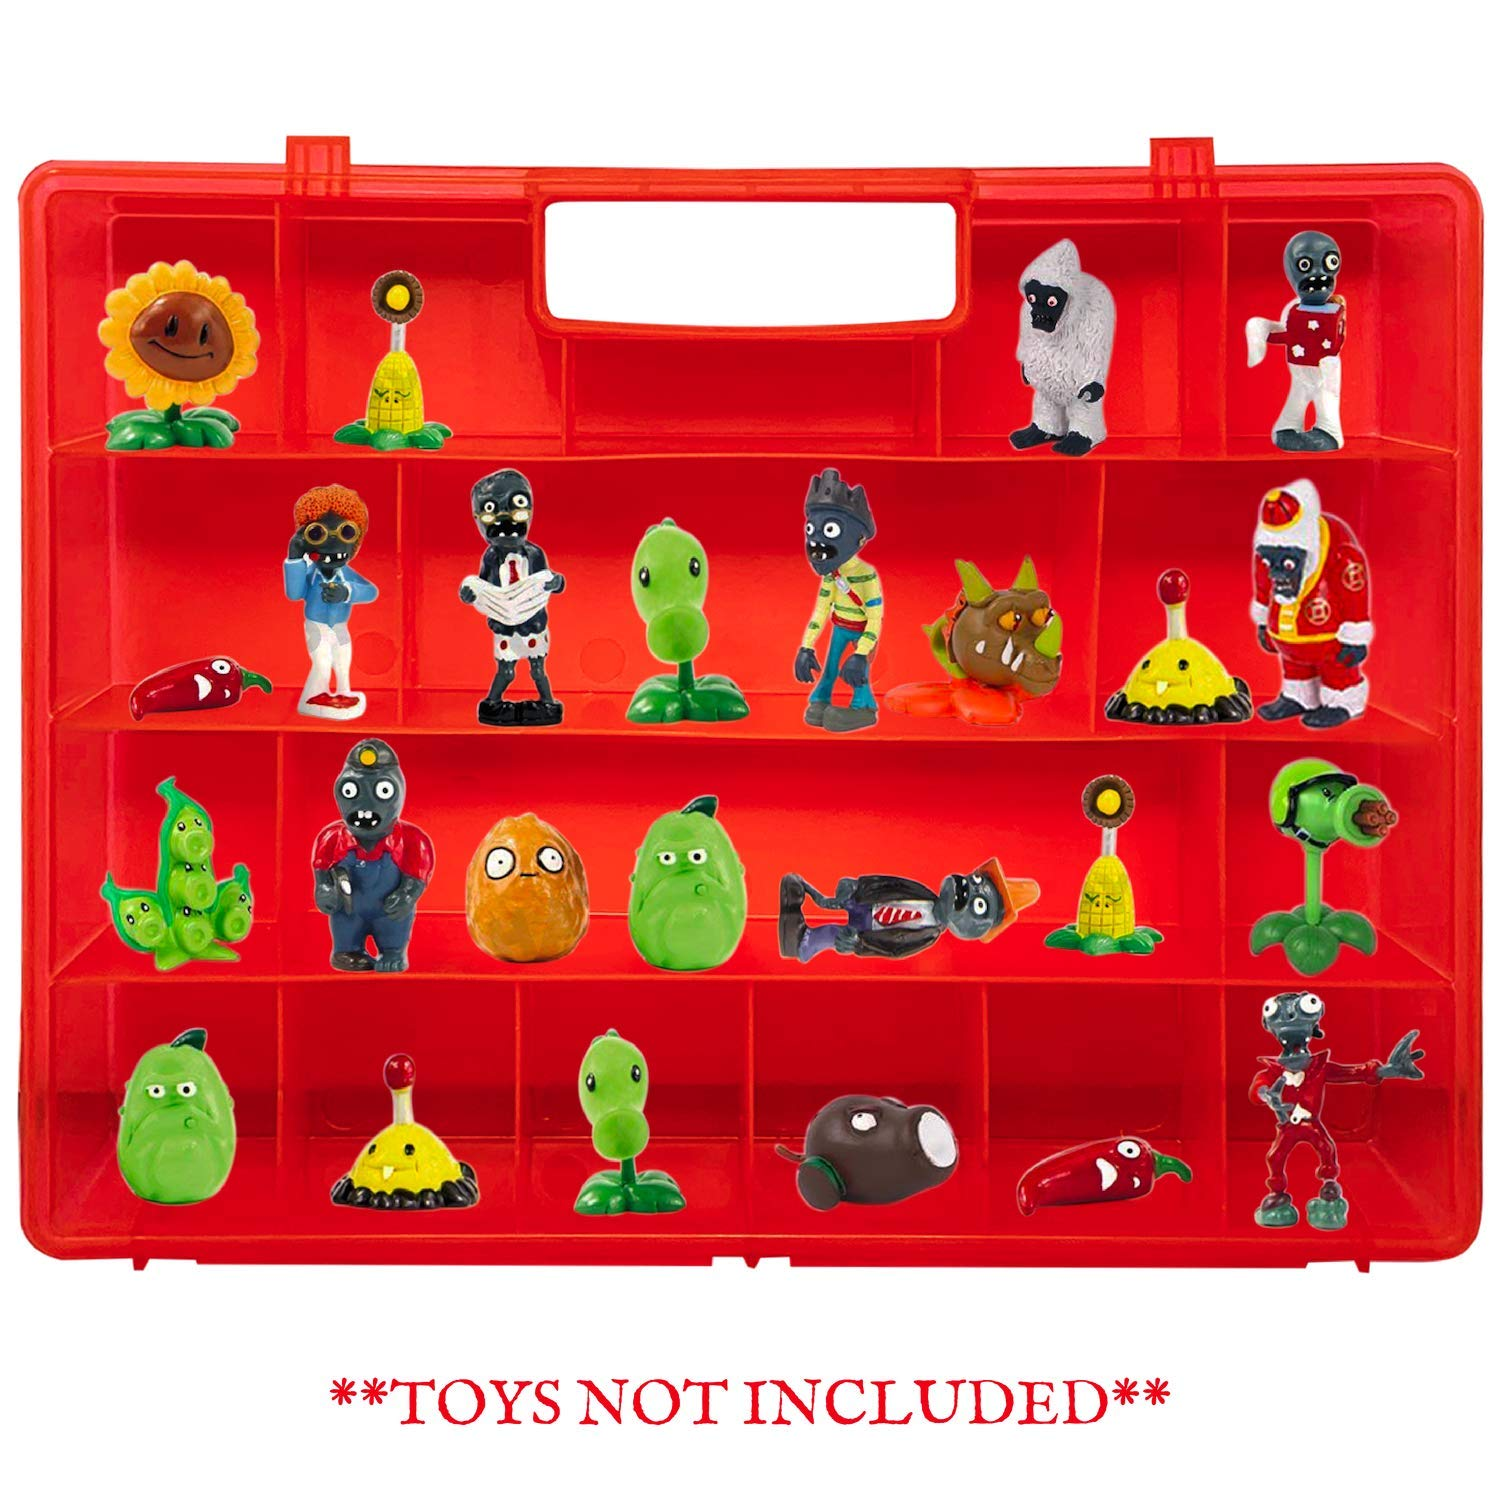 Well-Made Red Toy Holder by Life Made Easy to Carry Case for Mini Toy Figures and Accessories Light Weight Life Made Better Compatible with Plants vs Zombies